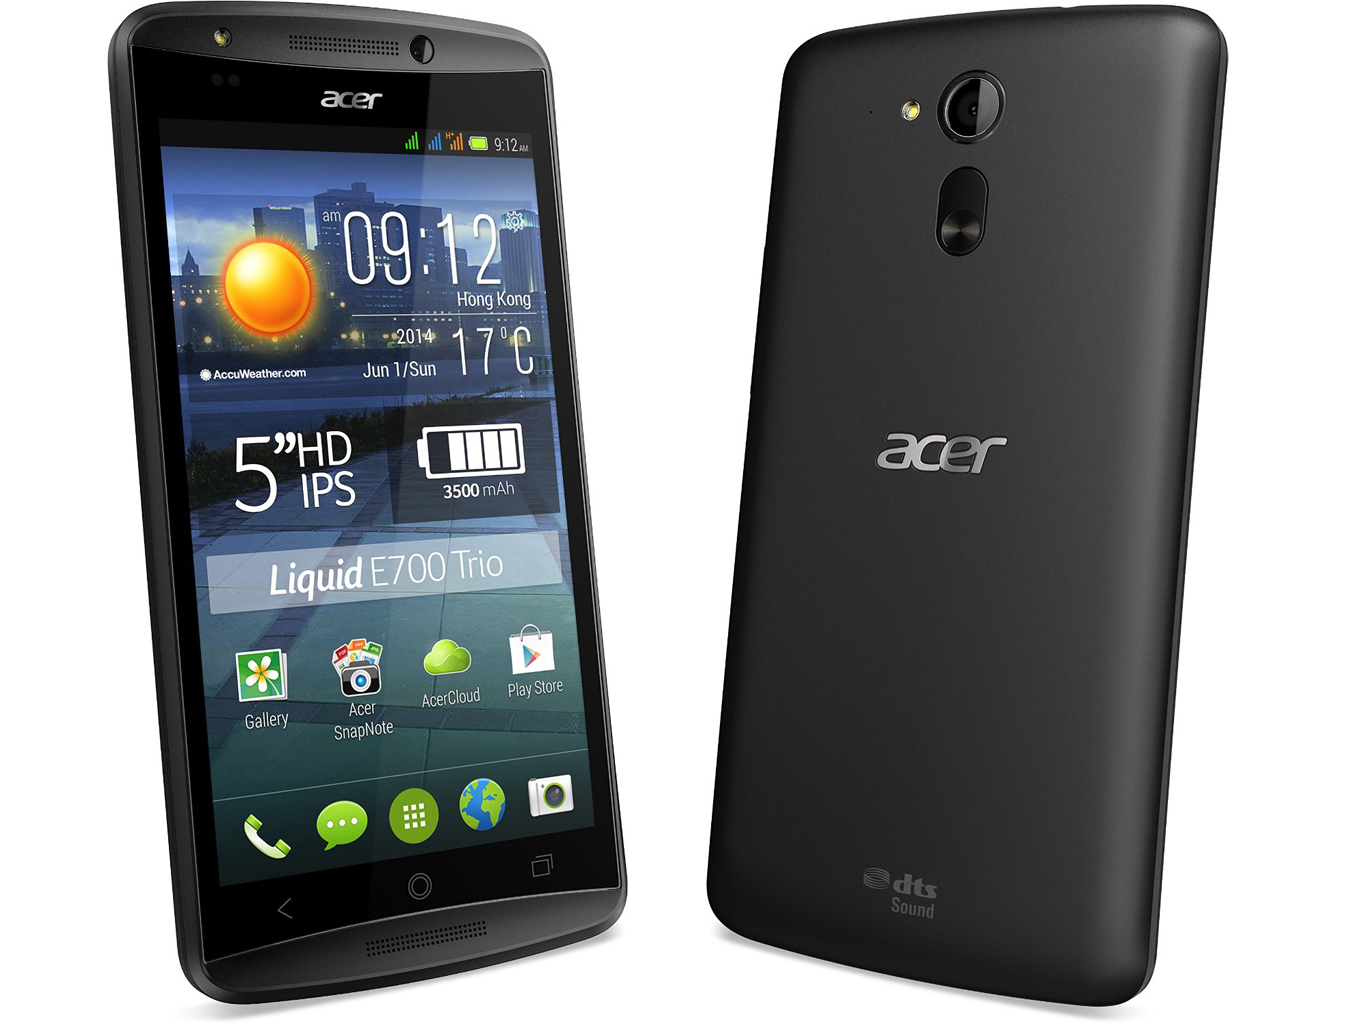 How to Root Acer Liquid E700 with Magisk without TWRP